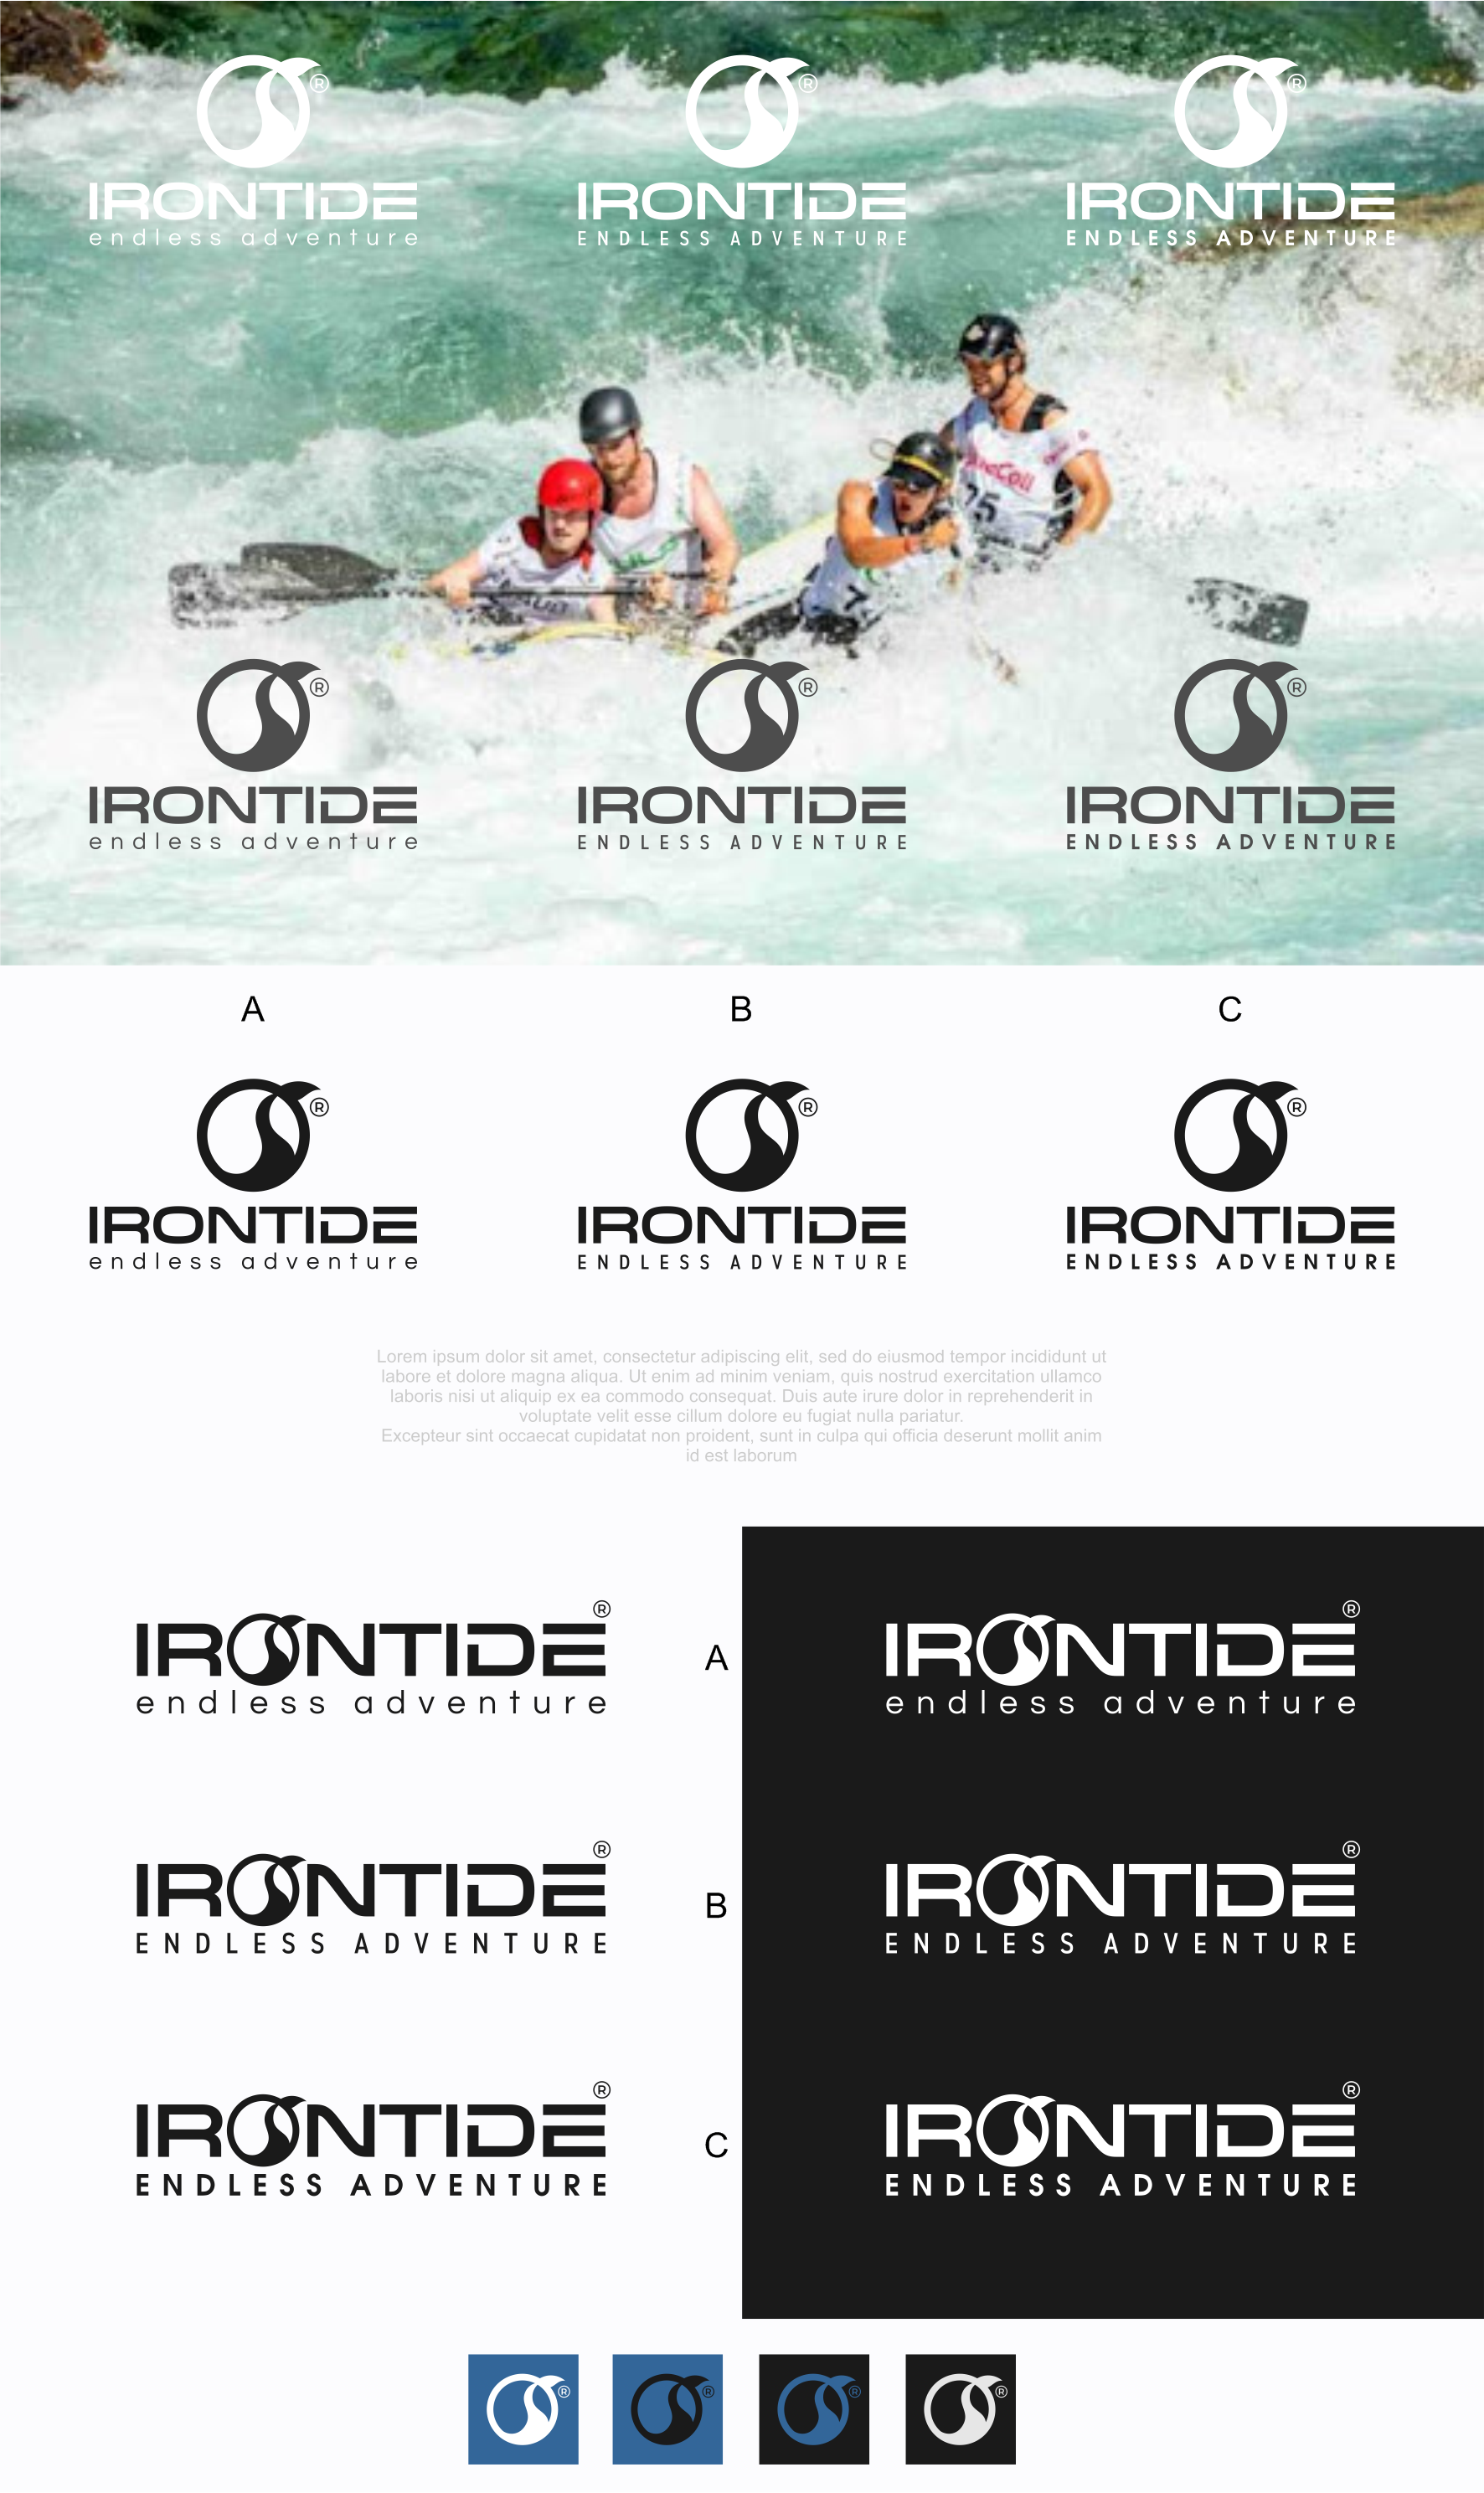 Irontide--Create a logo for our outdoor sports and apparel brand!